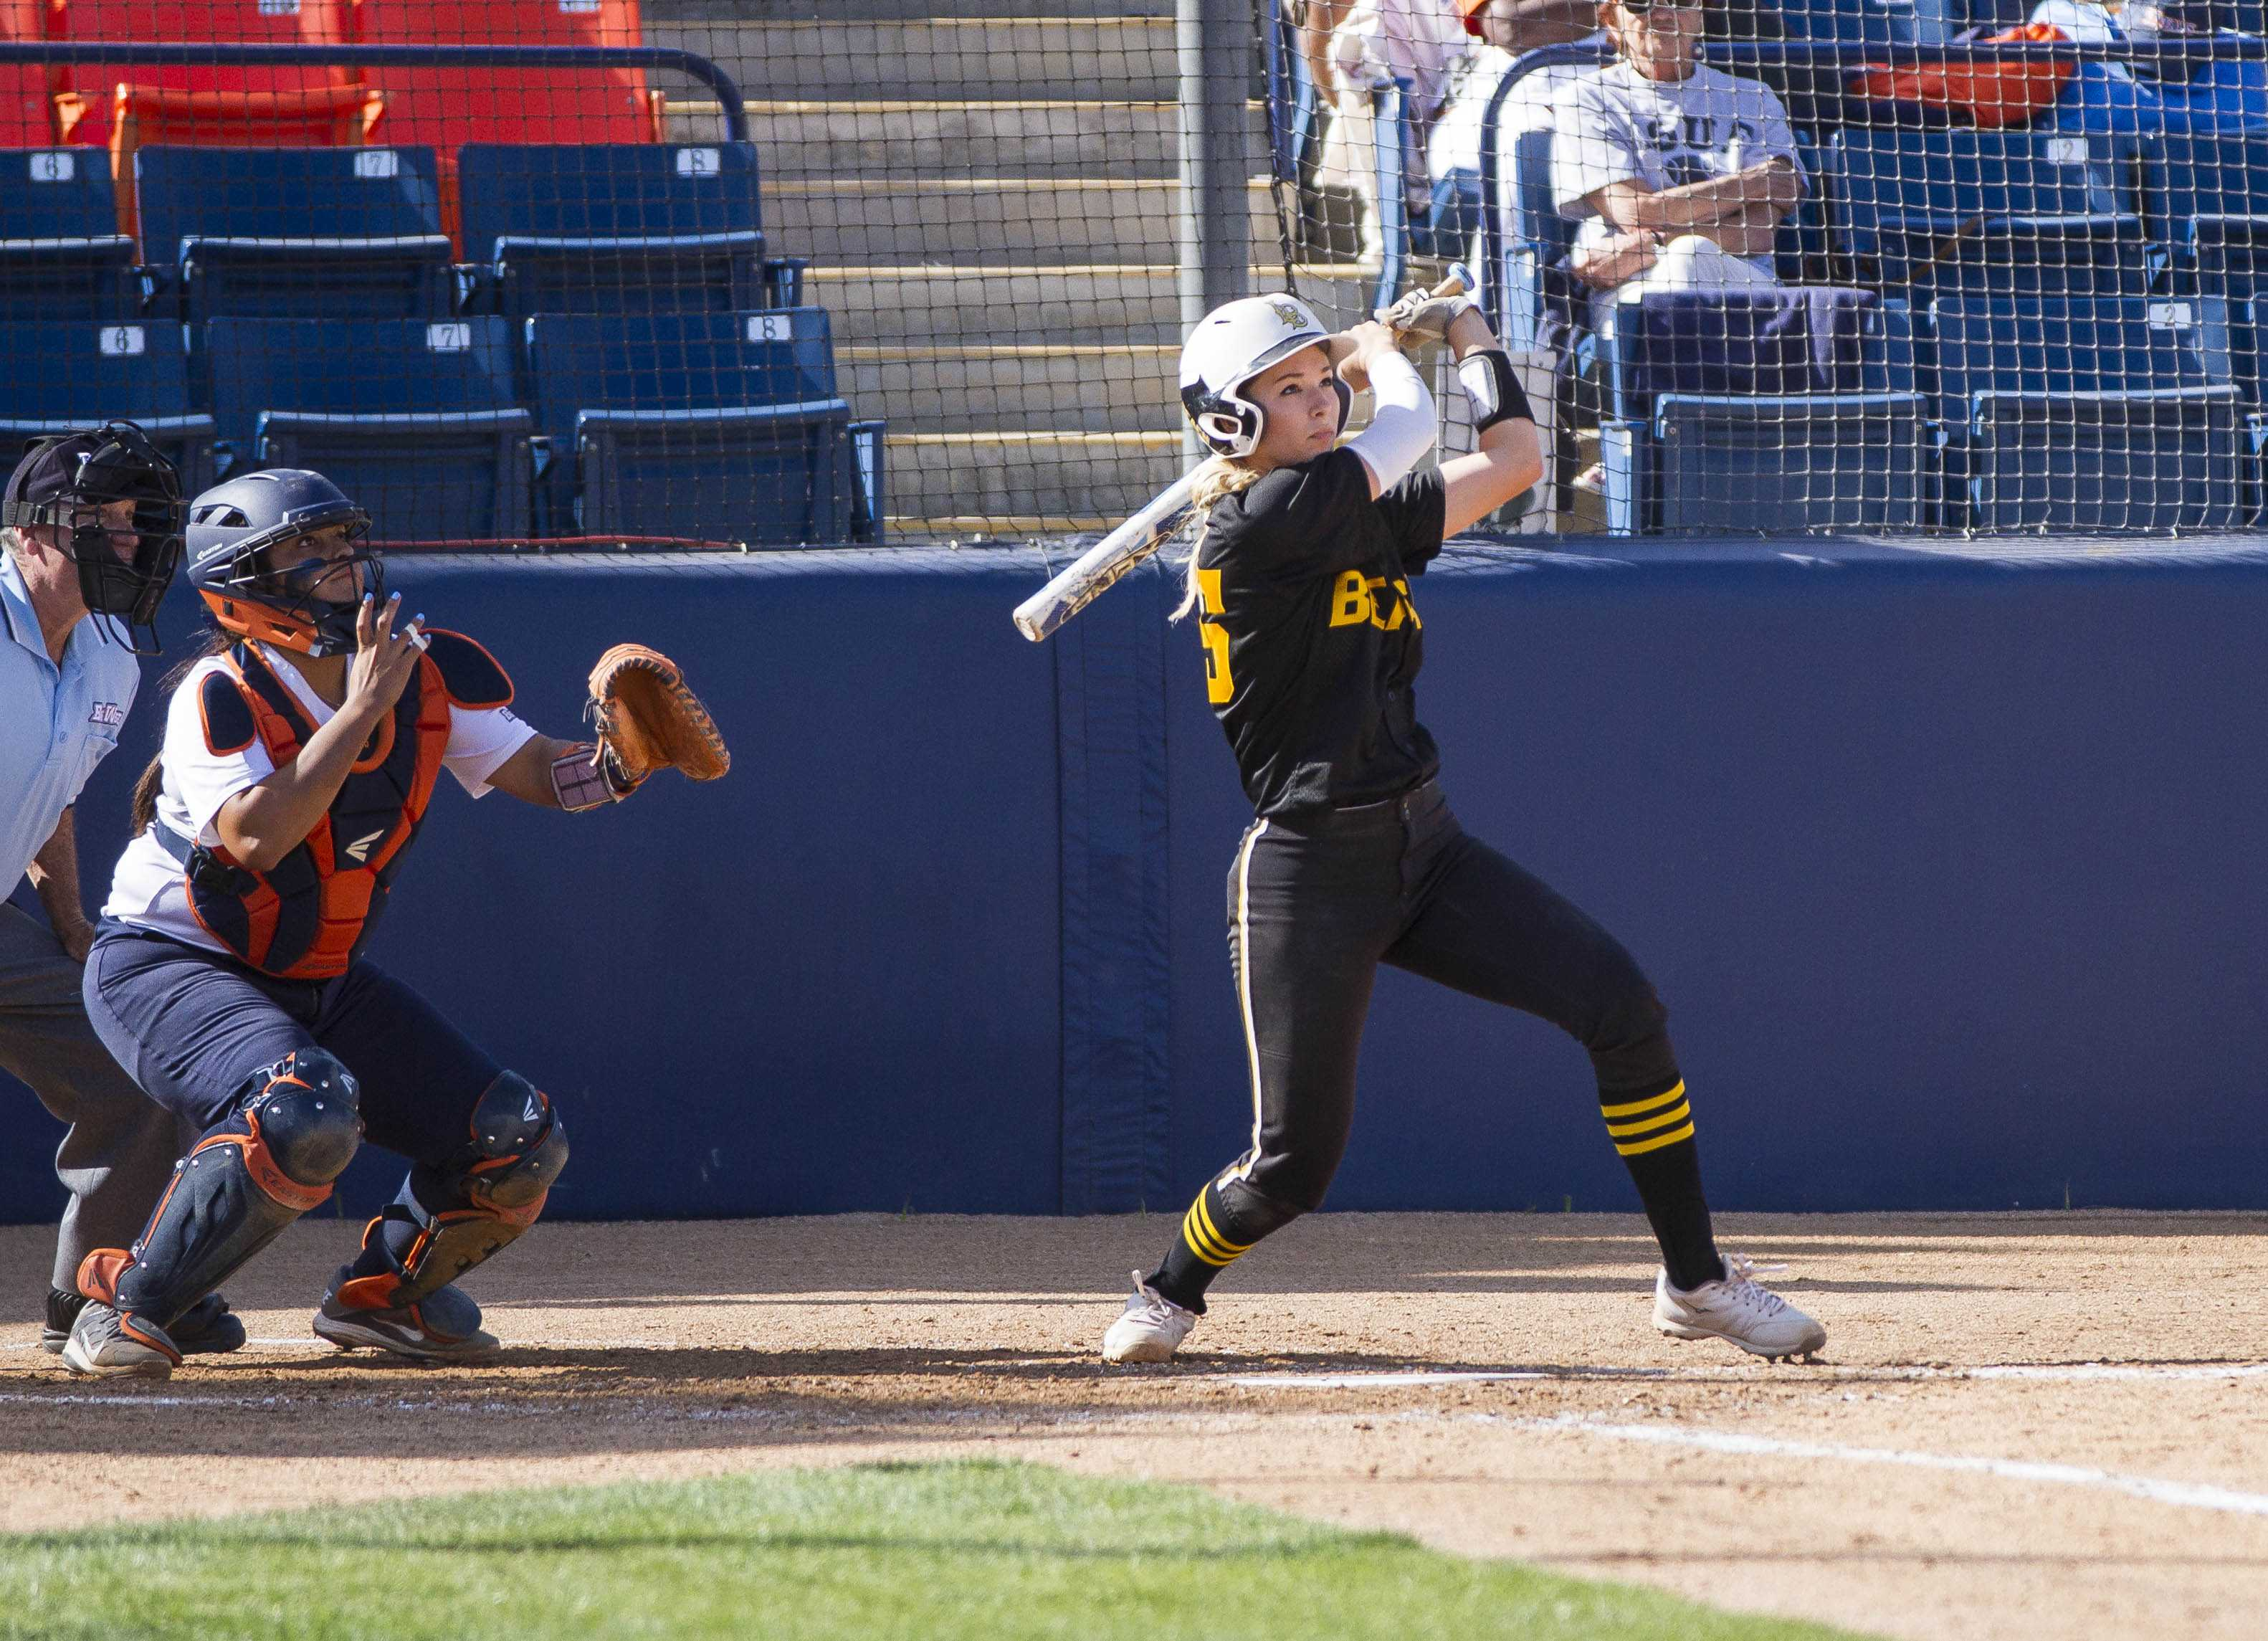 LBSU catcher Lauren MacLeod gets a hit during the 49ers' 8-1 win in game one of Wednesday's doubleheader against Cal State Fullerton at Anderson Family Field.